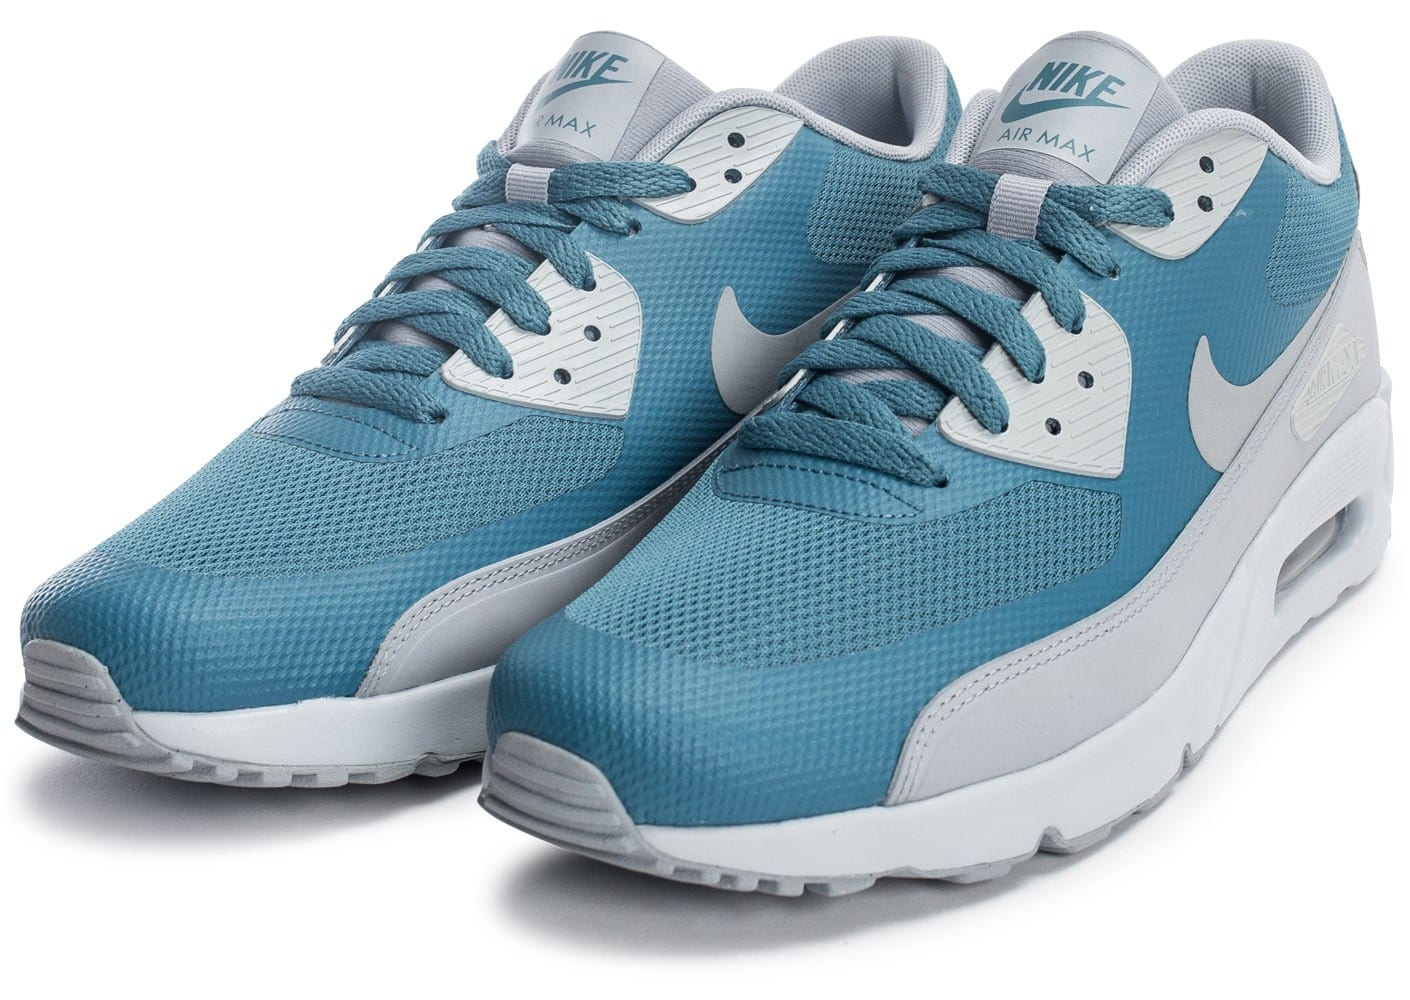 hot sale online 433b5 57f29 nike air max 90 bleu ciel